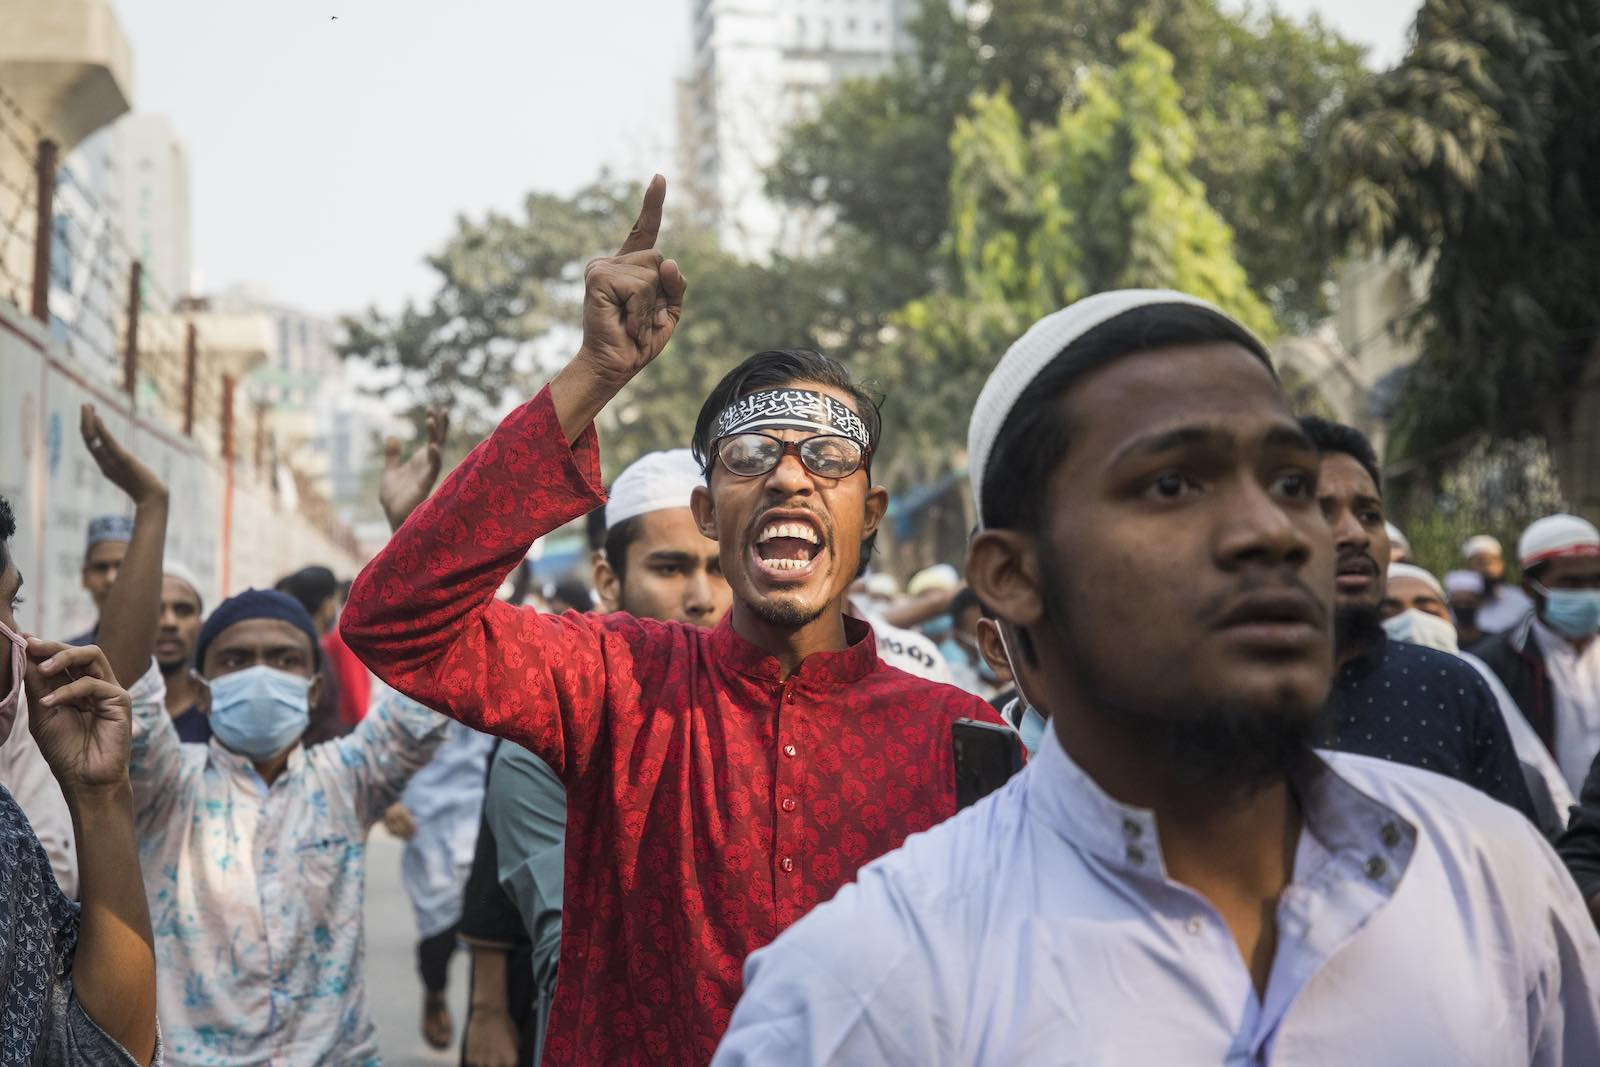 Protesting the installation of statues of Bangladesh's founding president, 4 December 2020 in Dhaka (Ahmed Salahuddin/NurPhoto via Getty Images)